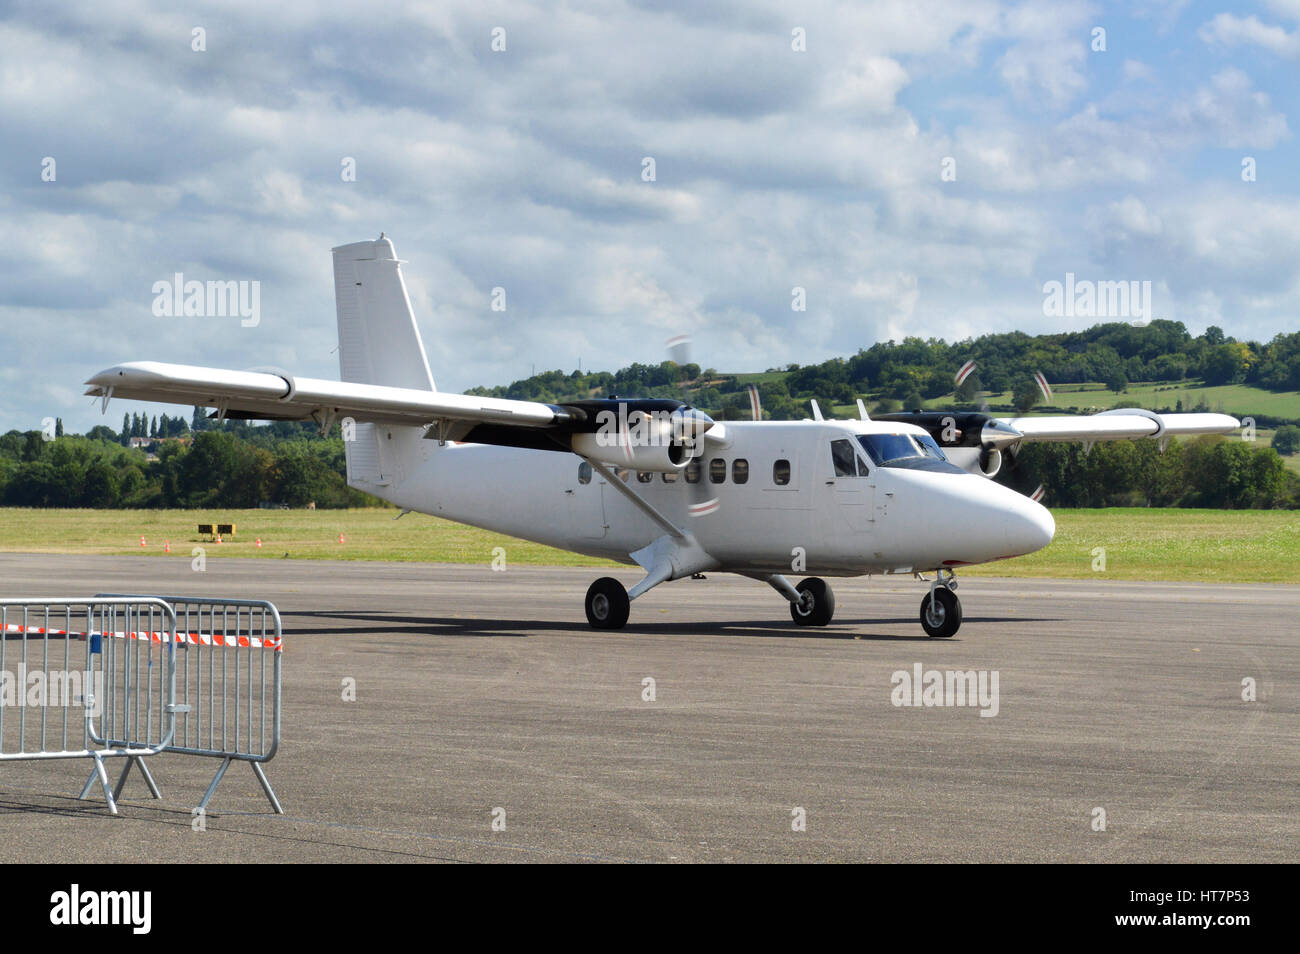 A twin-engine plane taxiing on an airport. - Stock Image